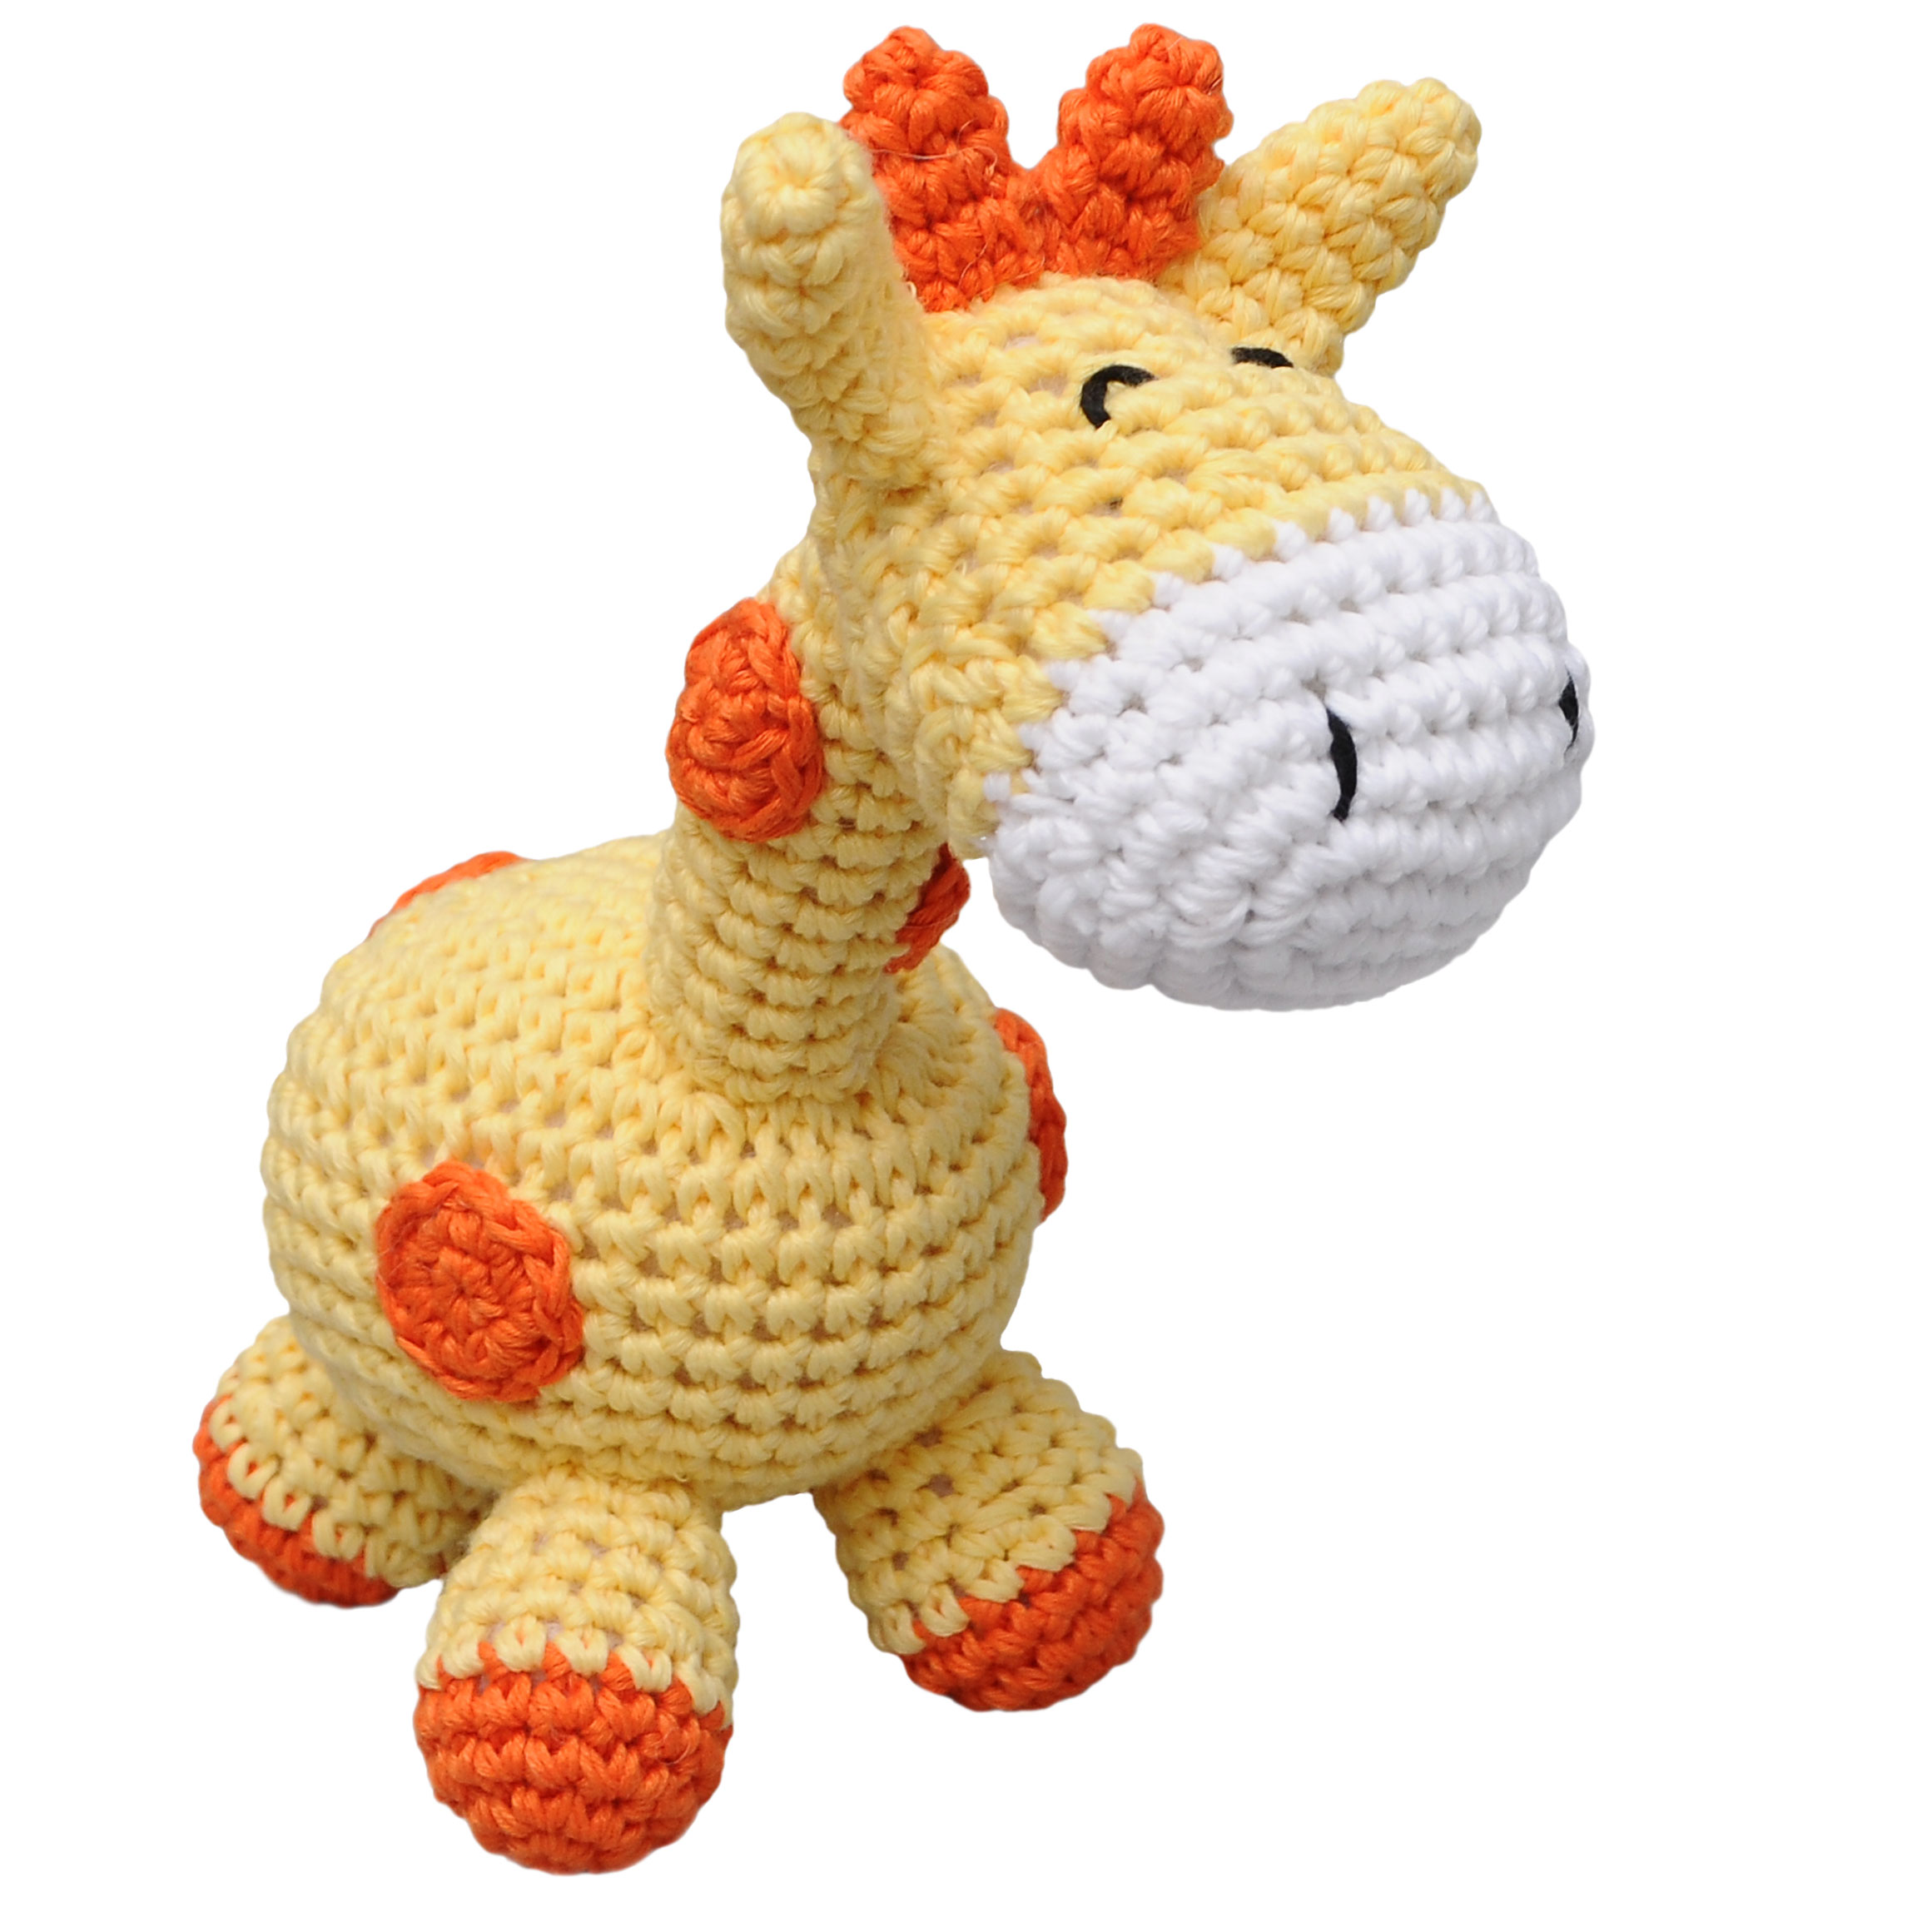 Yellow Giraffe Handmade Amigurumi Stuffed Toy Knit Crochet Doll VAC